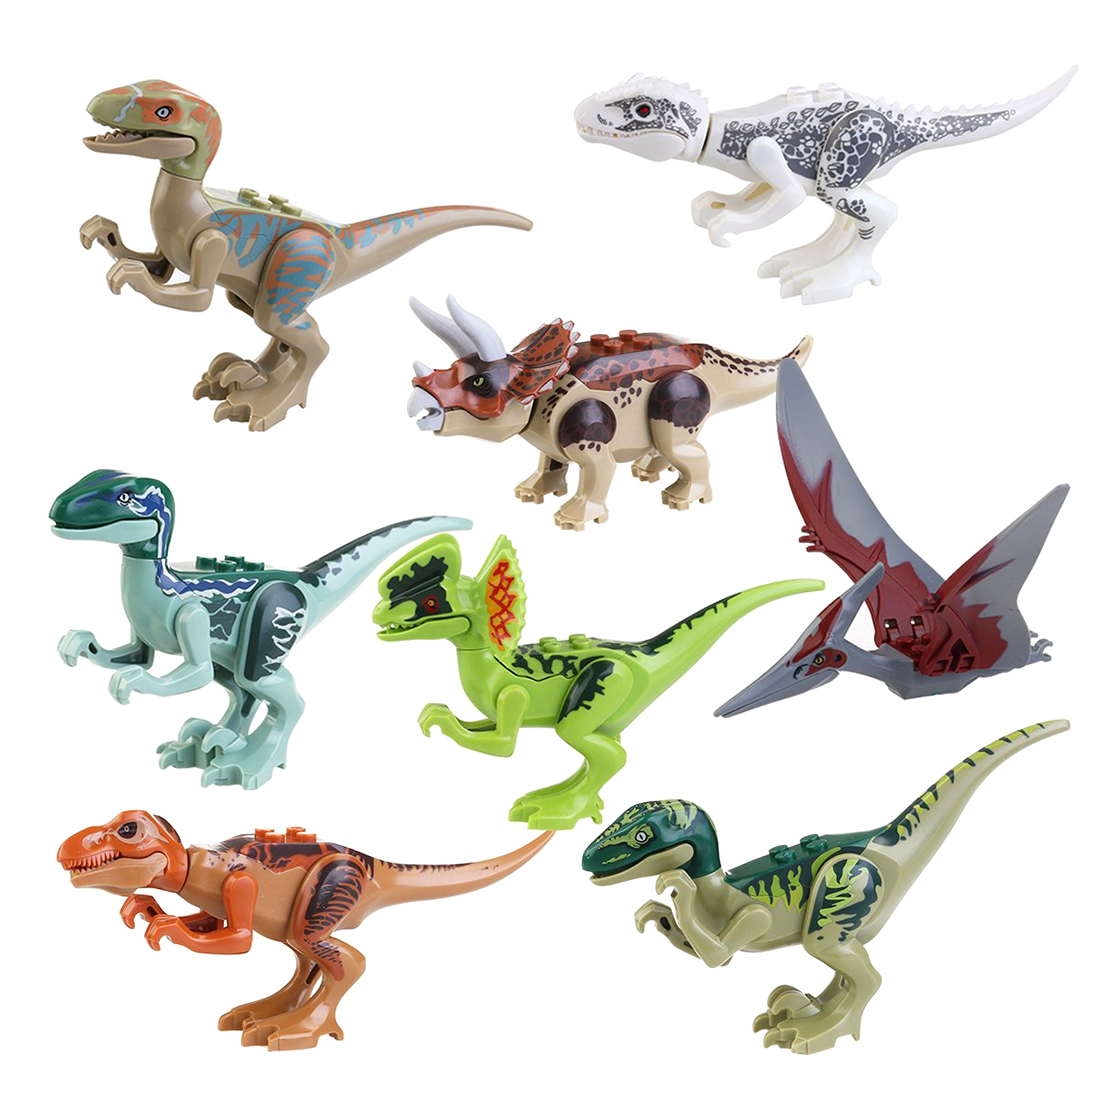 5 pack Jurassic Building Blocks Park Dinosaur Toys Jurassic World Dinosaur Toys - 8pcs мд бородина сервелат мадера колбаса варено копченая 400 г